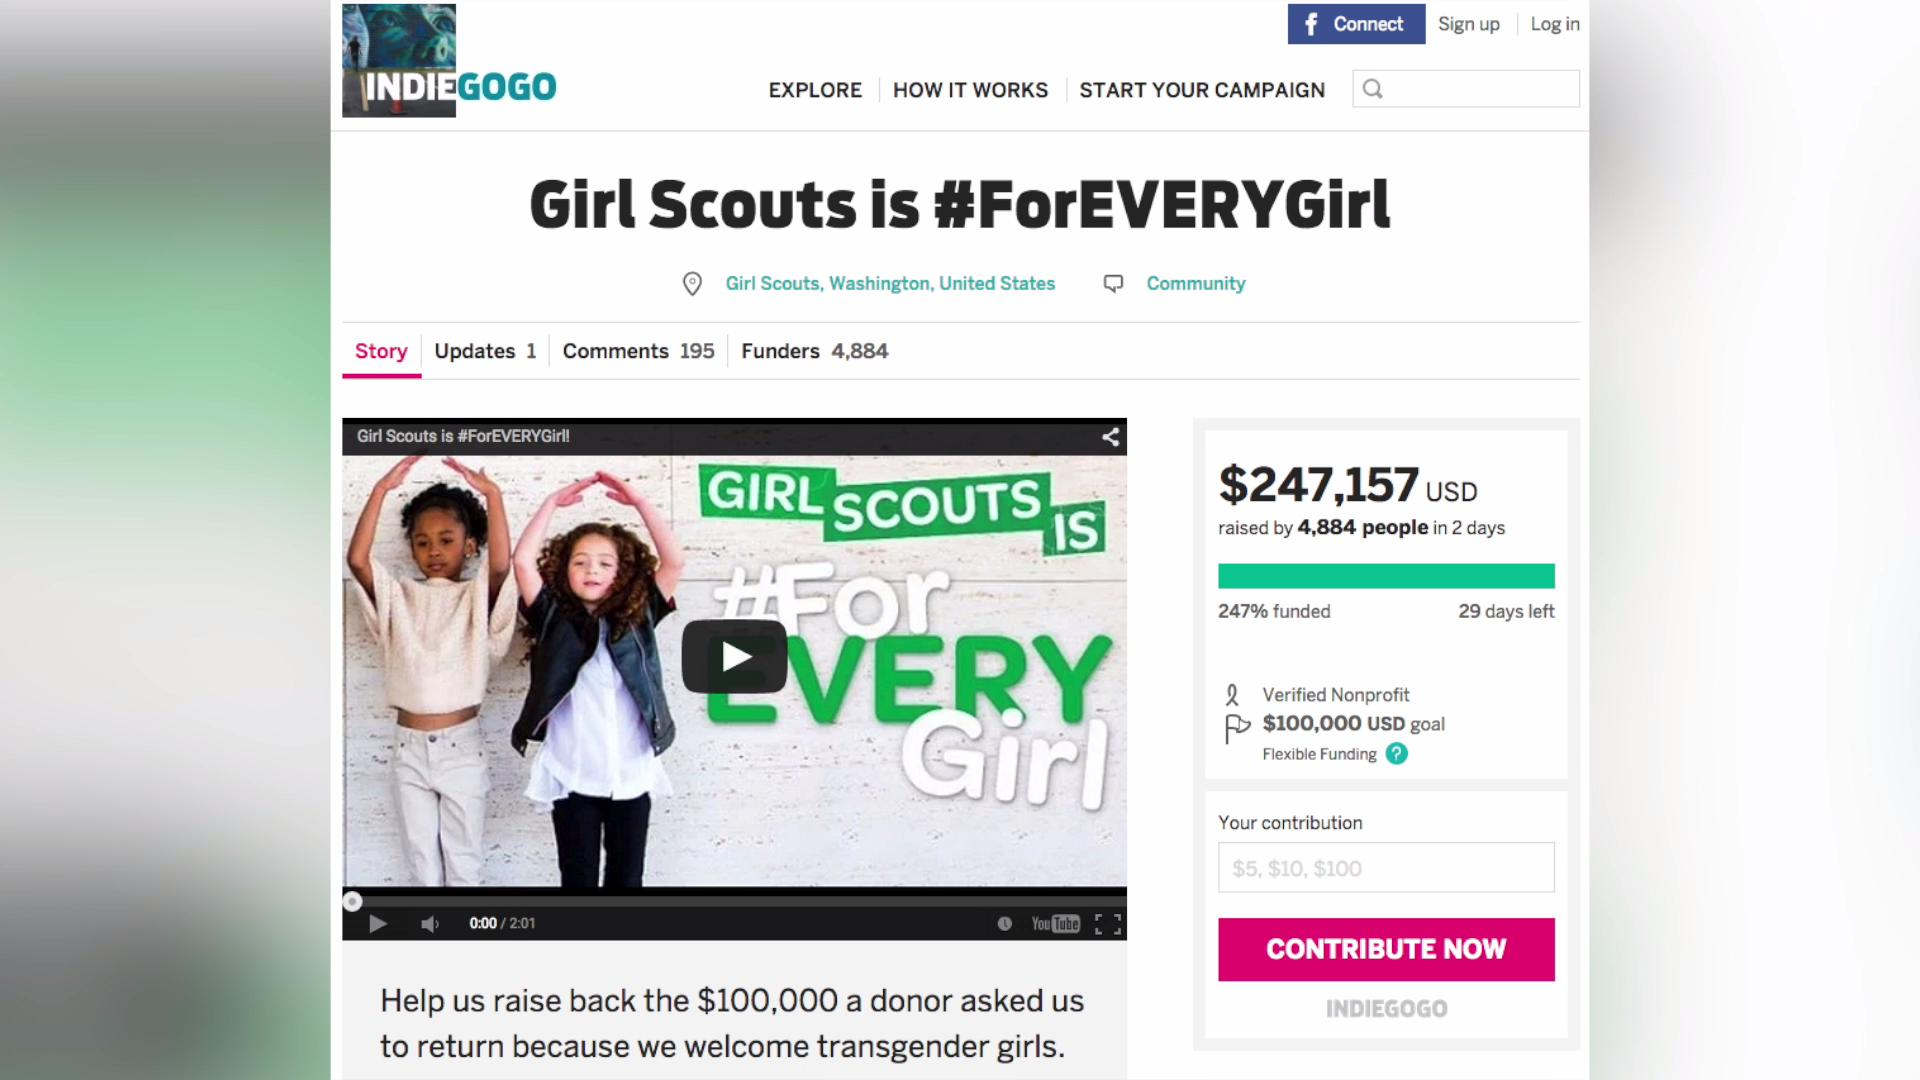 Girl Scouts raise $250K after turning down $100K donation